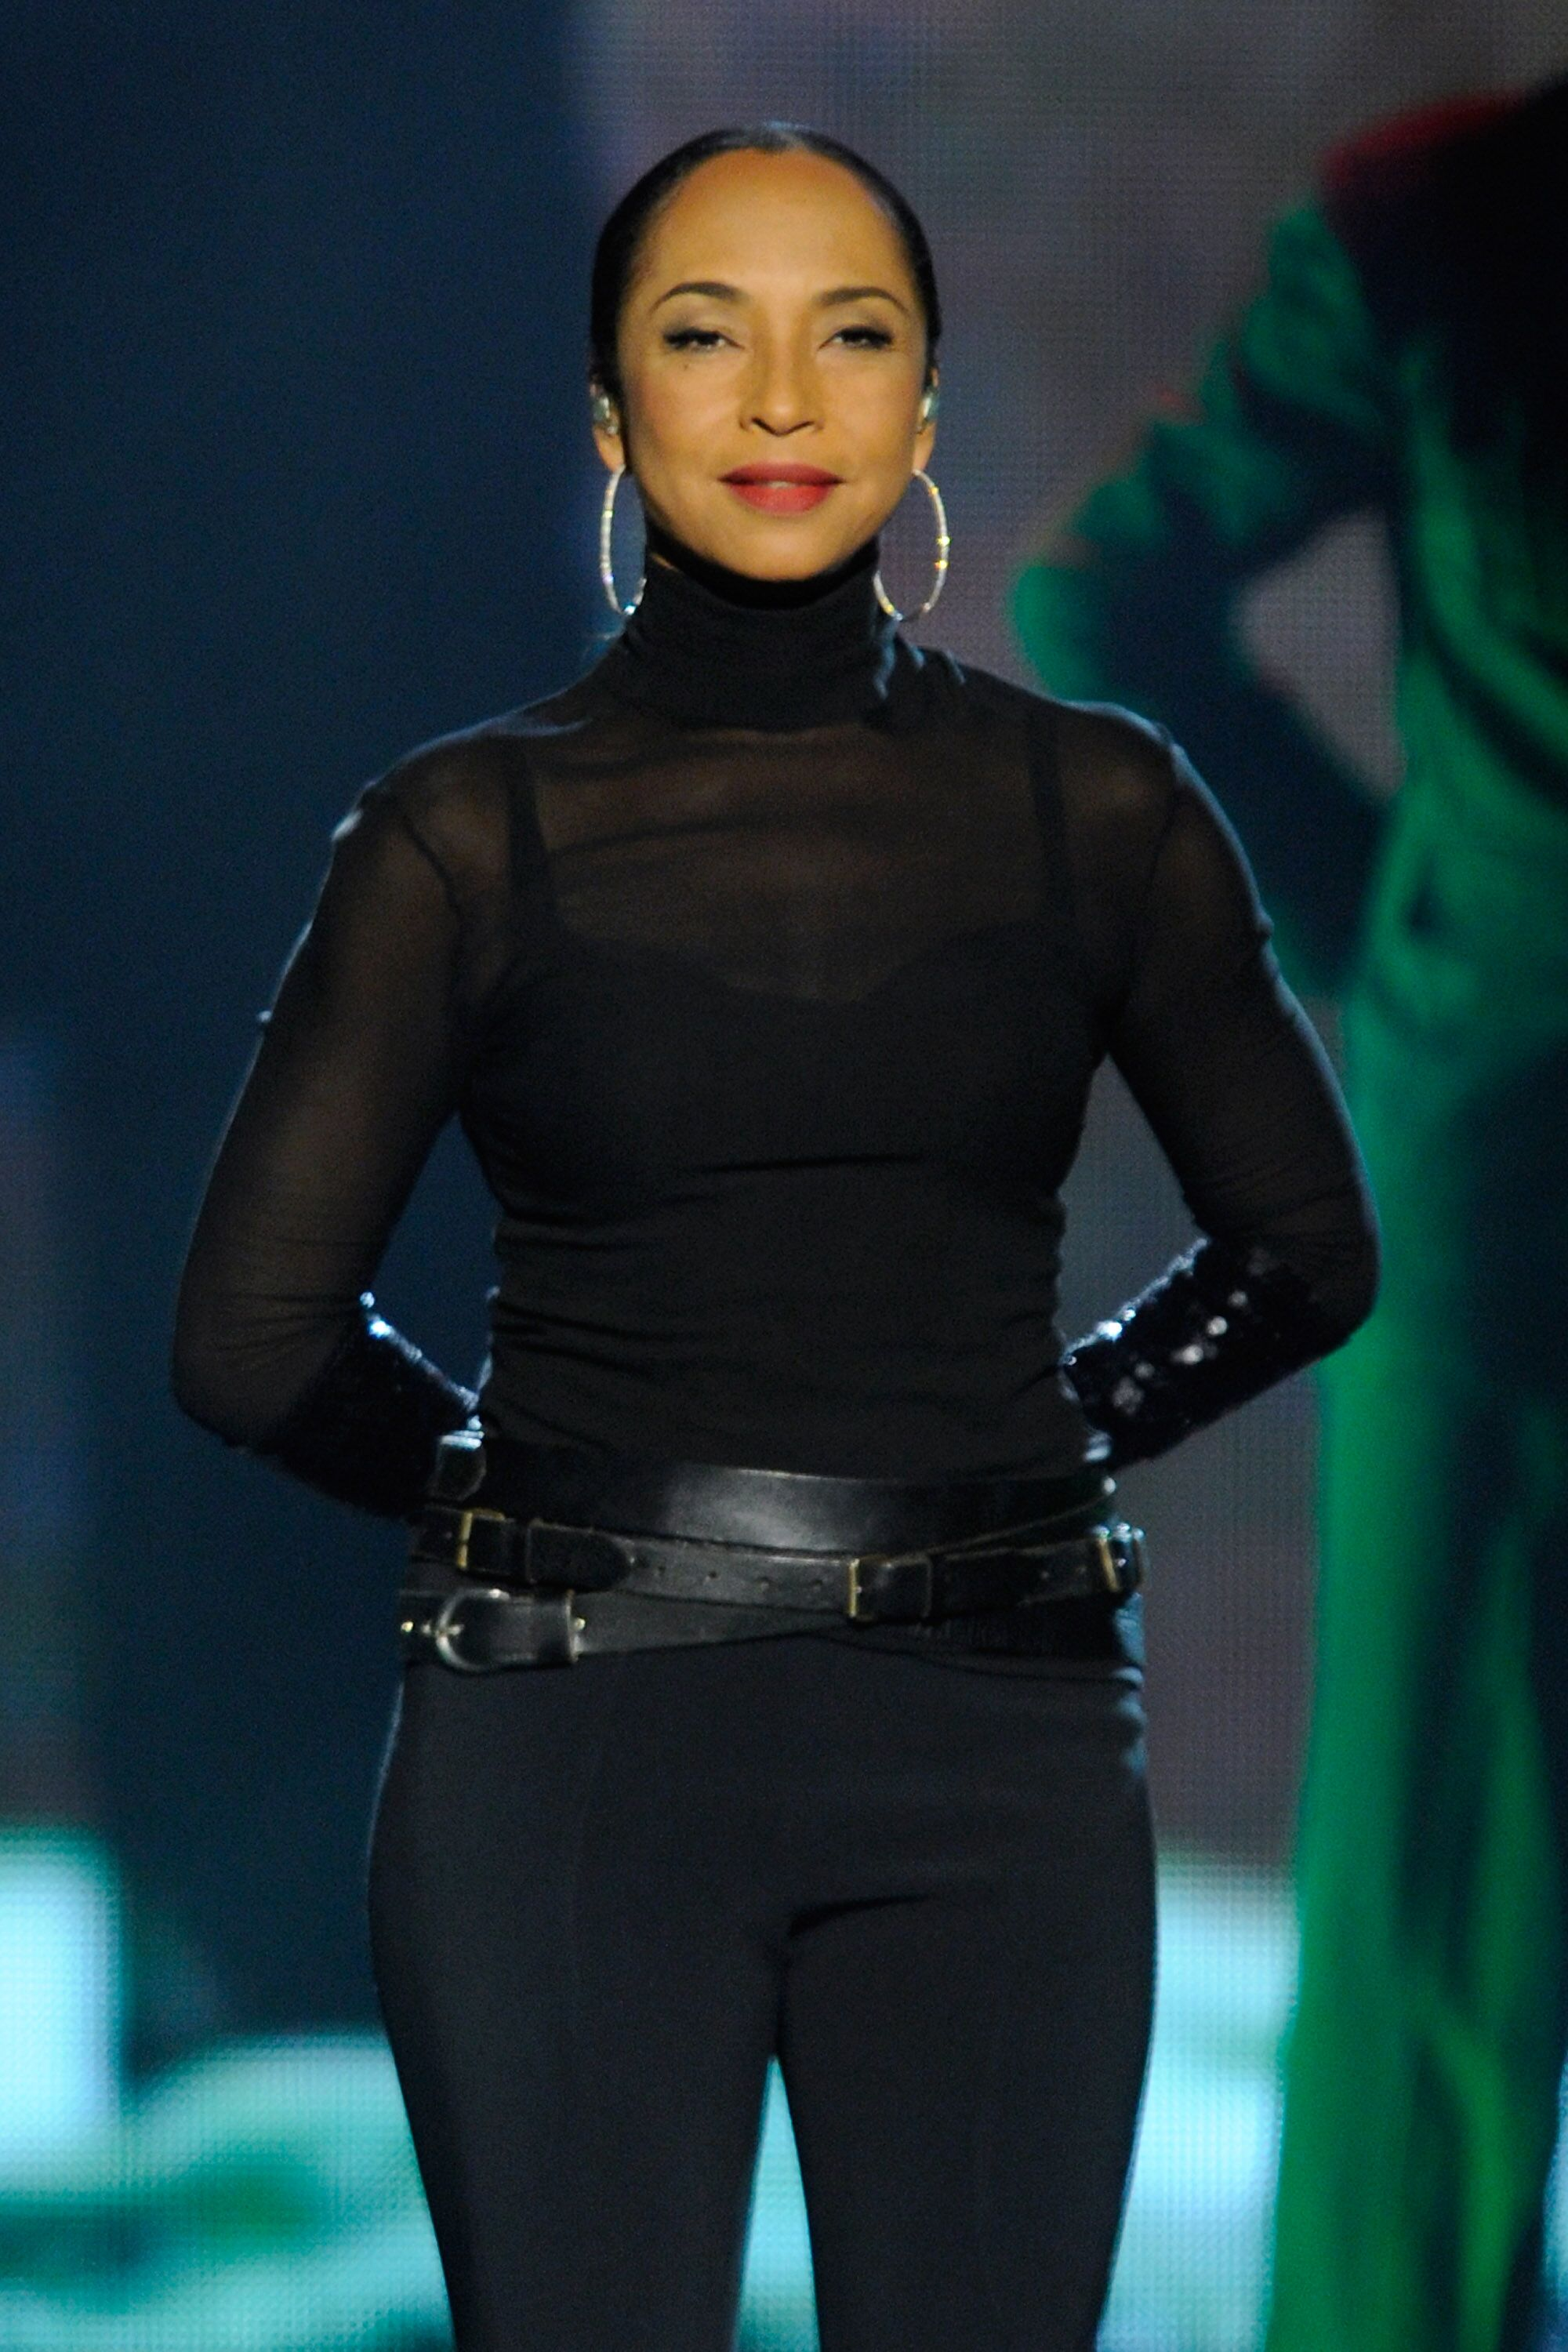 Singer Sade performing at the Oracle Arena in August 2011. | Photo: Getty Images